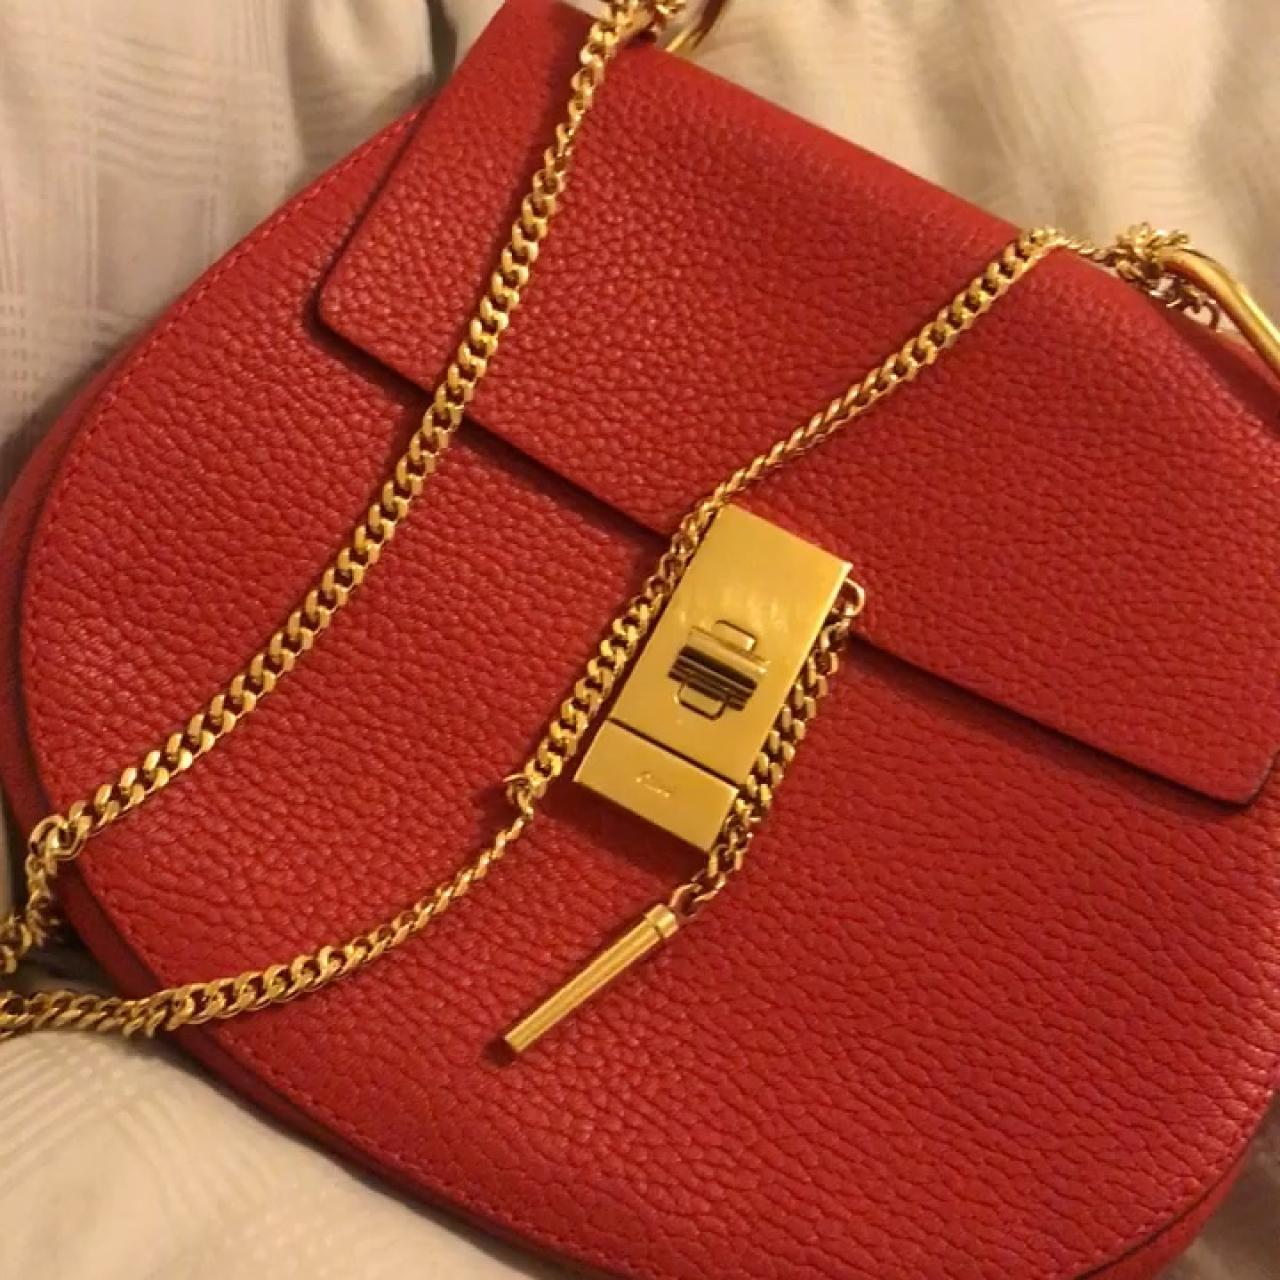 55104990d951 Genuine  designer  Chloe Drew  bag in red leather with gold - Depop